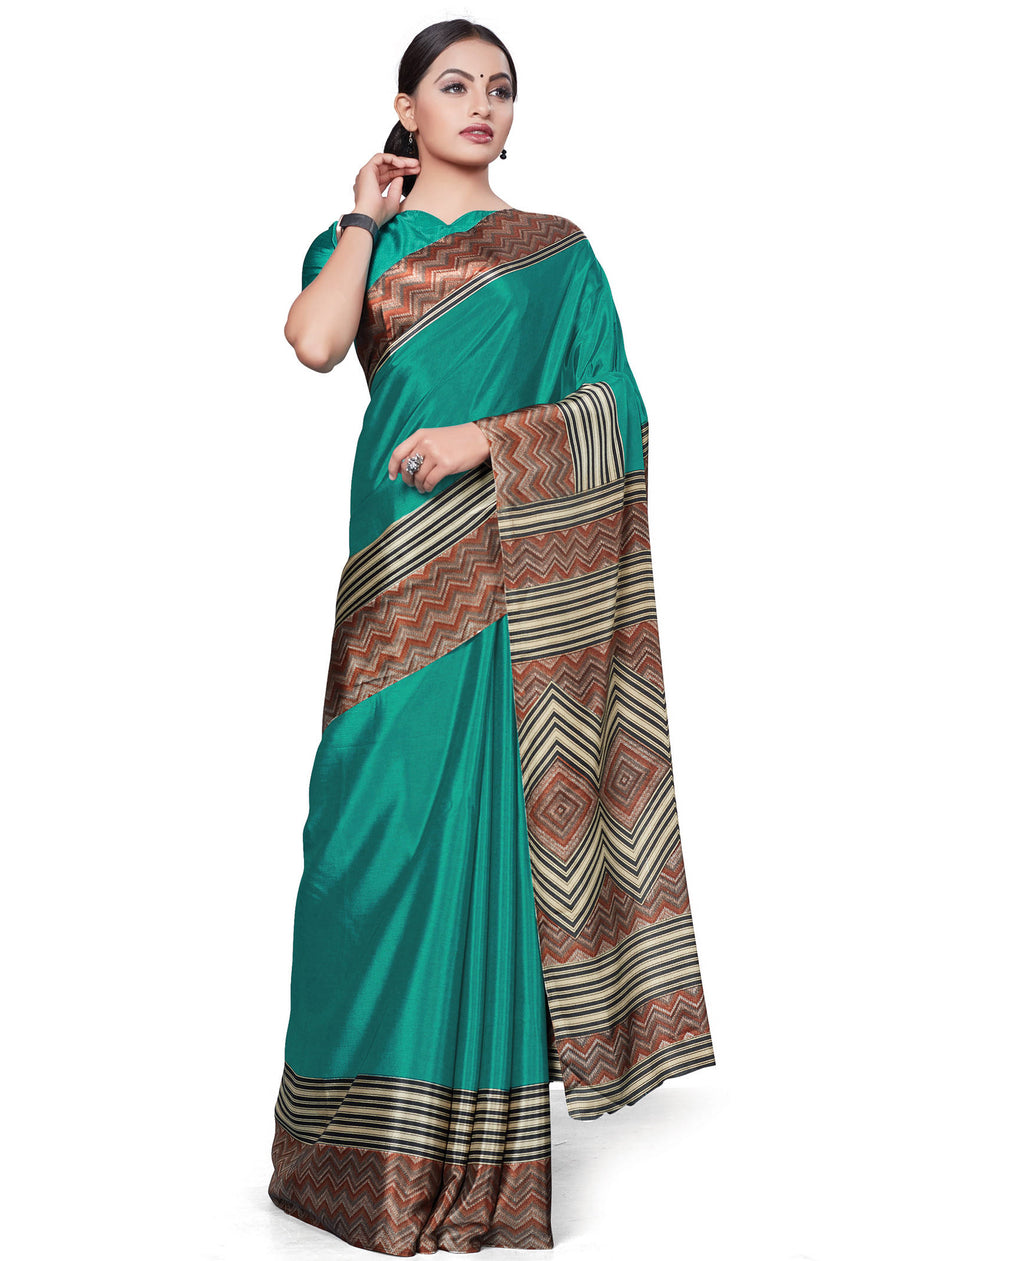 Rama Green Color Italian Crepe Printed Office Wear Sarees NYF-7696